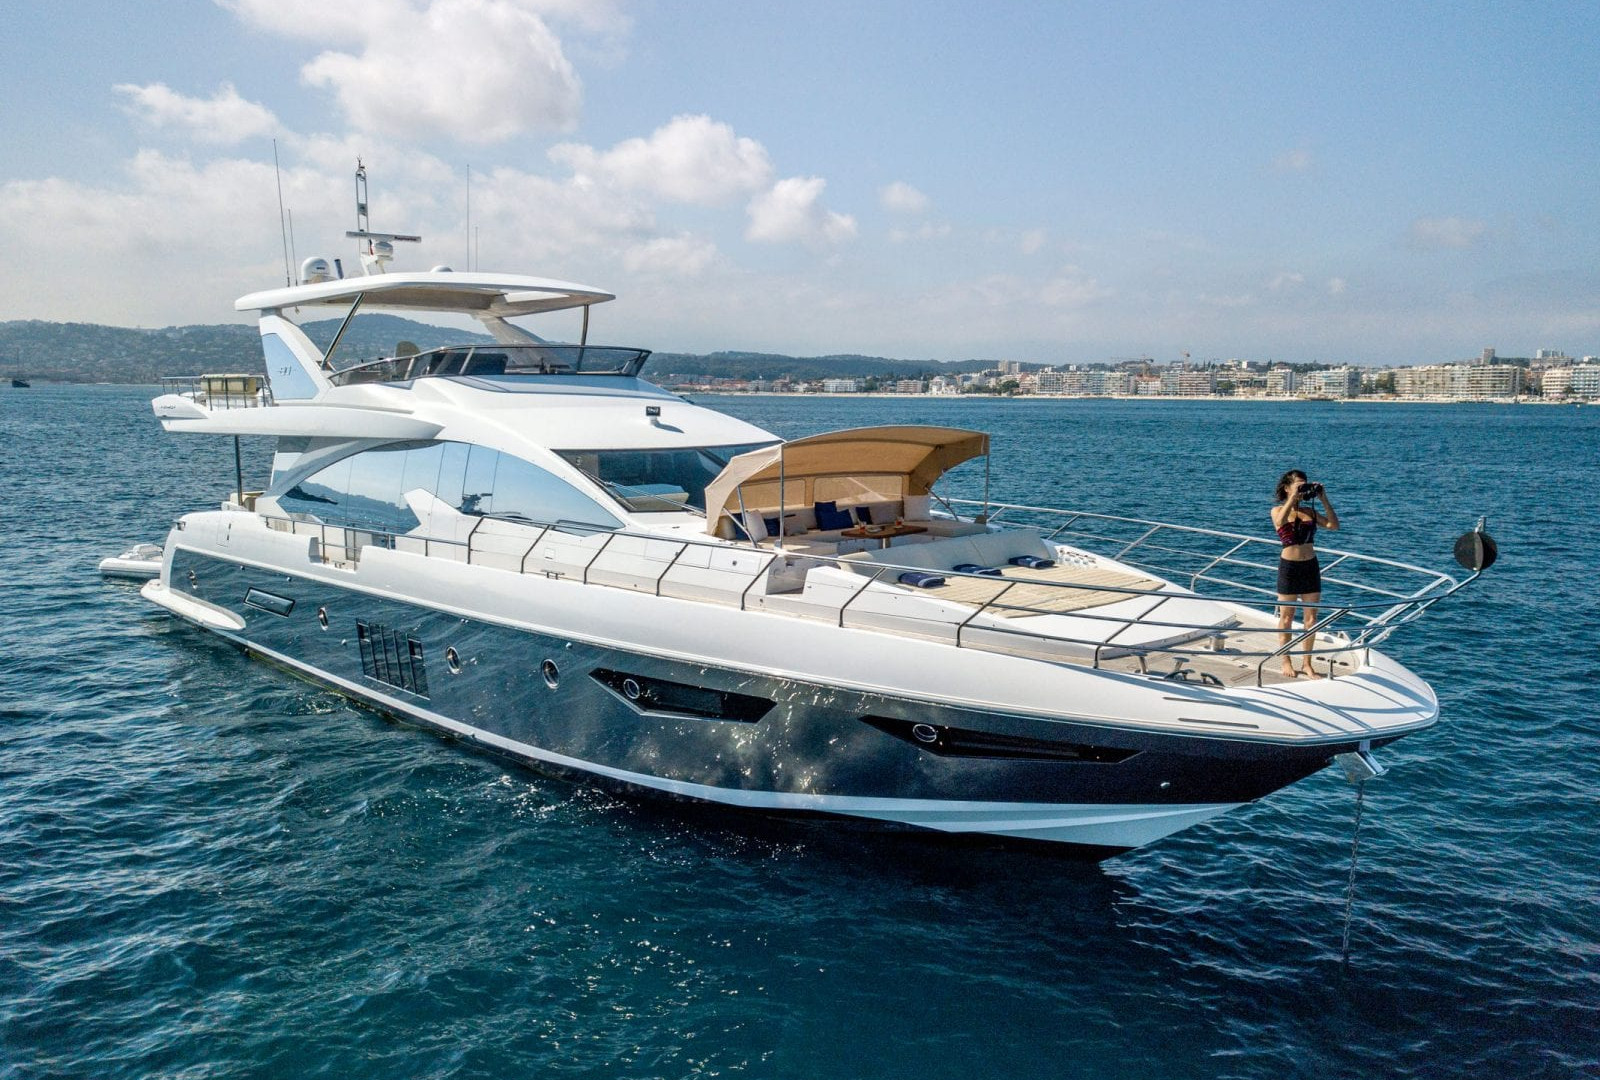 Yacht INVICTUS - on charter